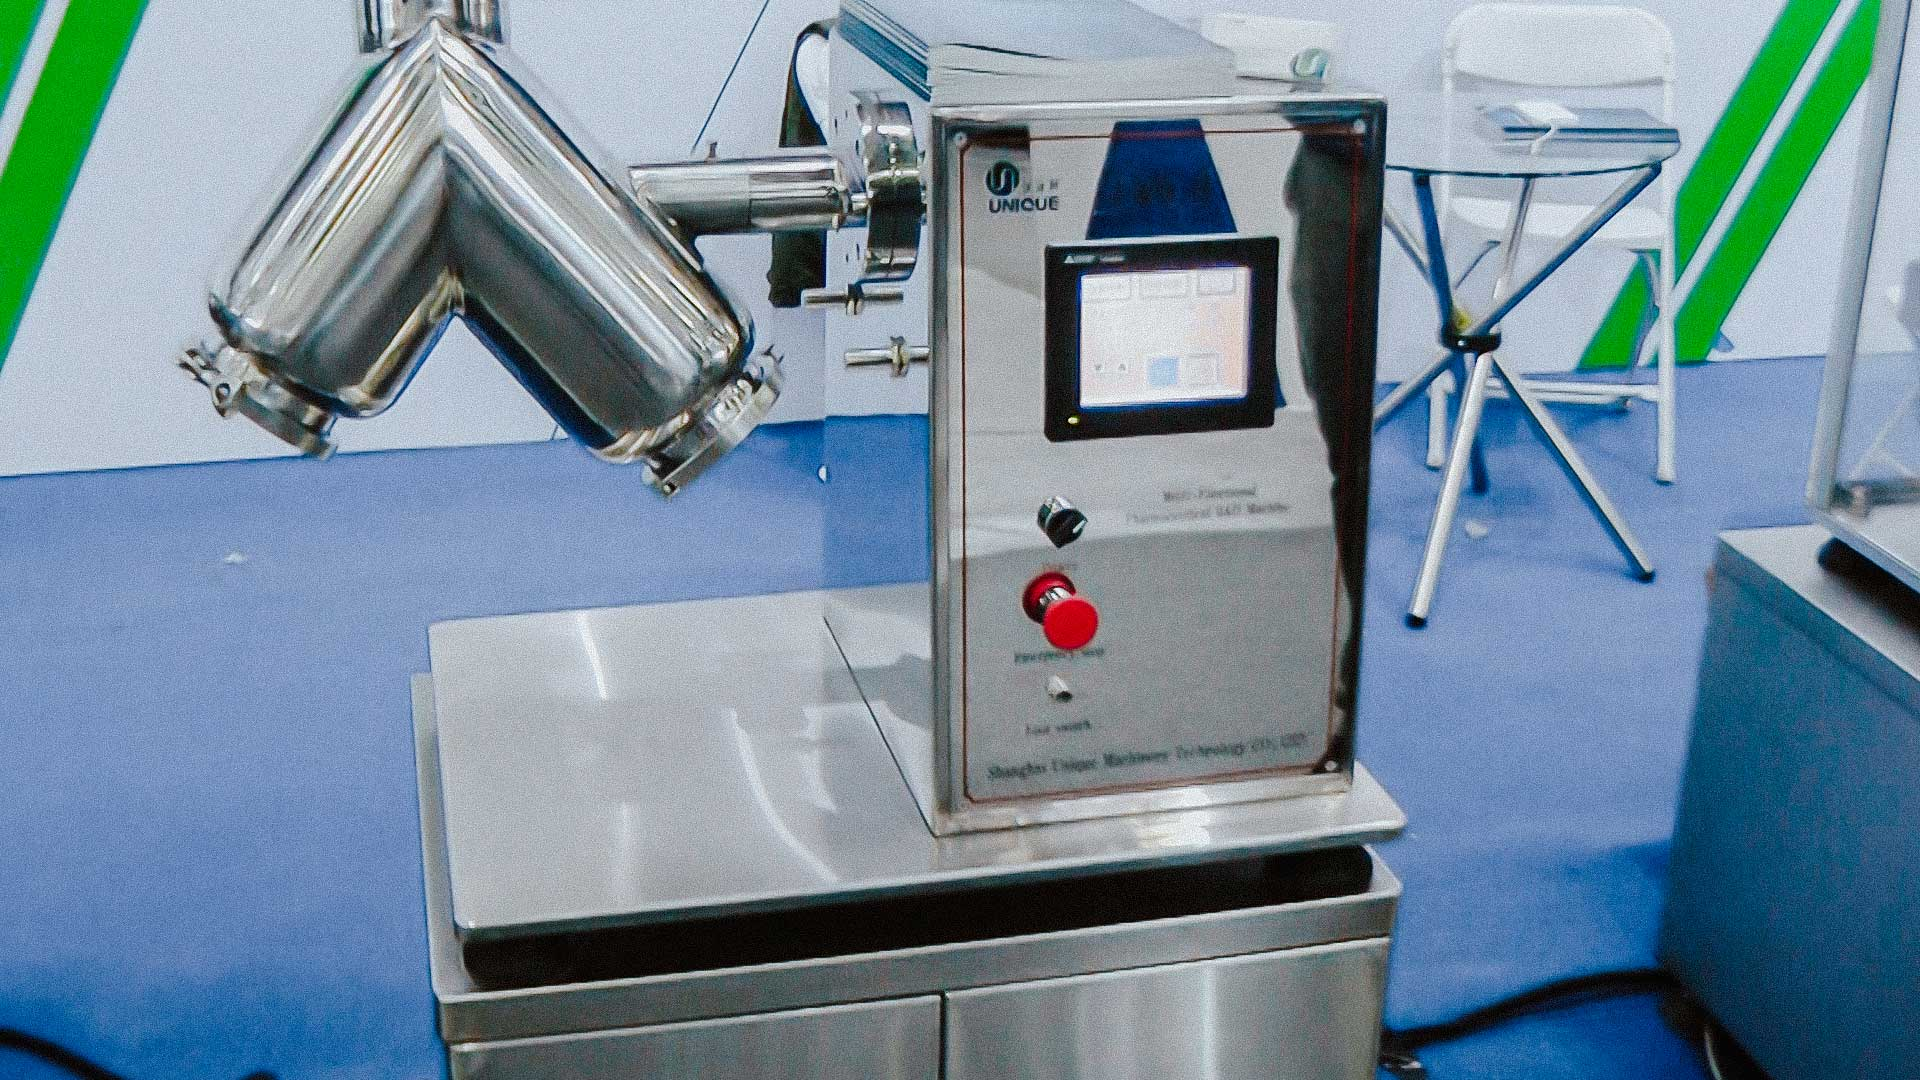 V-mixer to prepare a mixture of powders use for drug manufacture